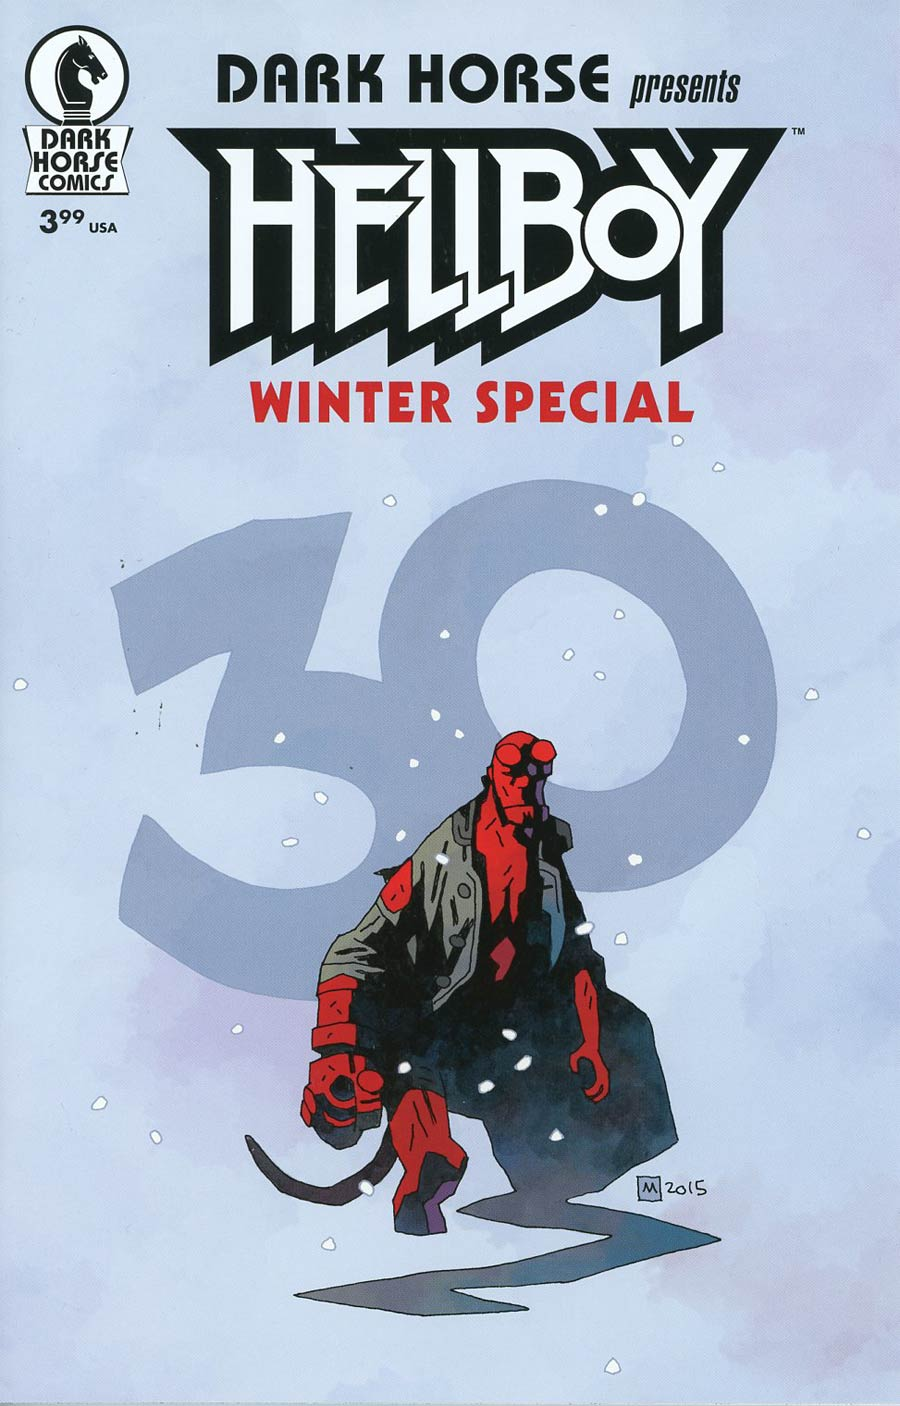 Hellboy Winter Special 2016 #1 Cover B Variant Mike Mignola Cover